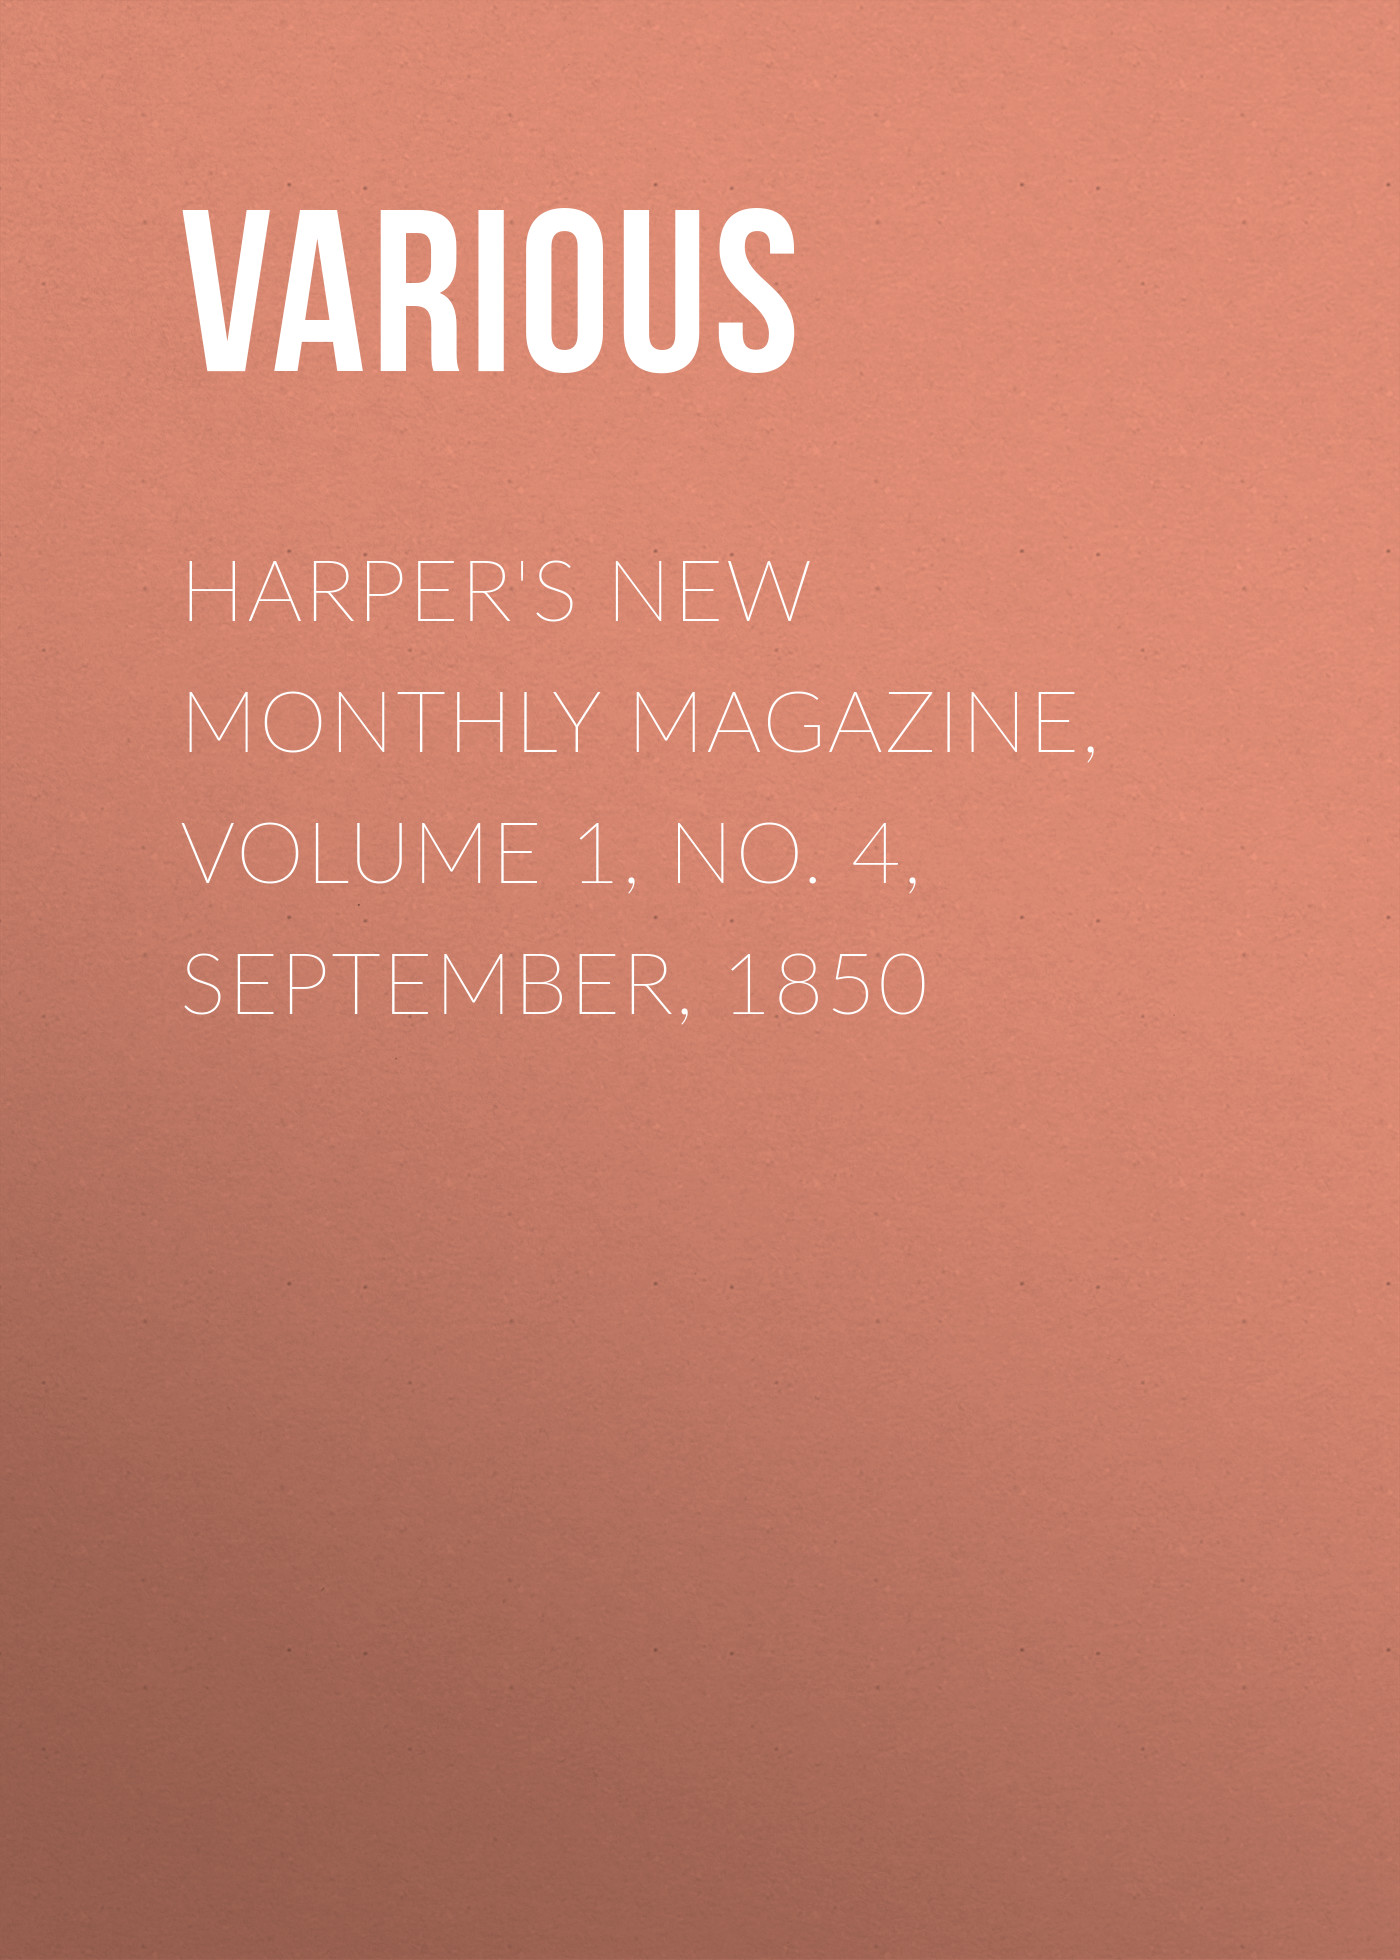 Various Harper's New Monthly Magazine, Volume 1, No. 4, September, 1850 все цены